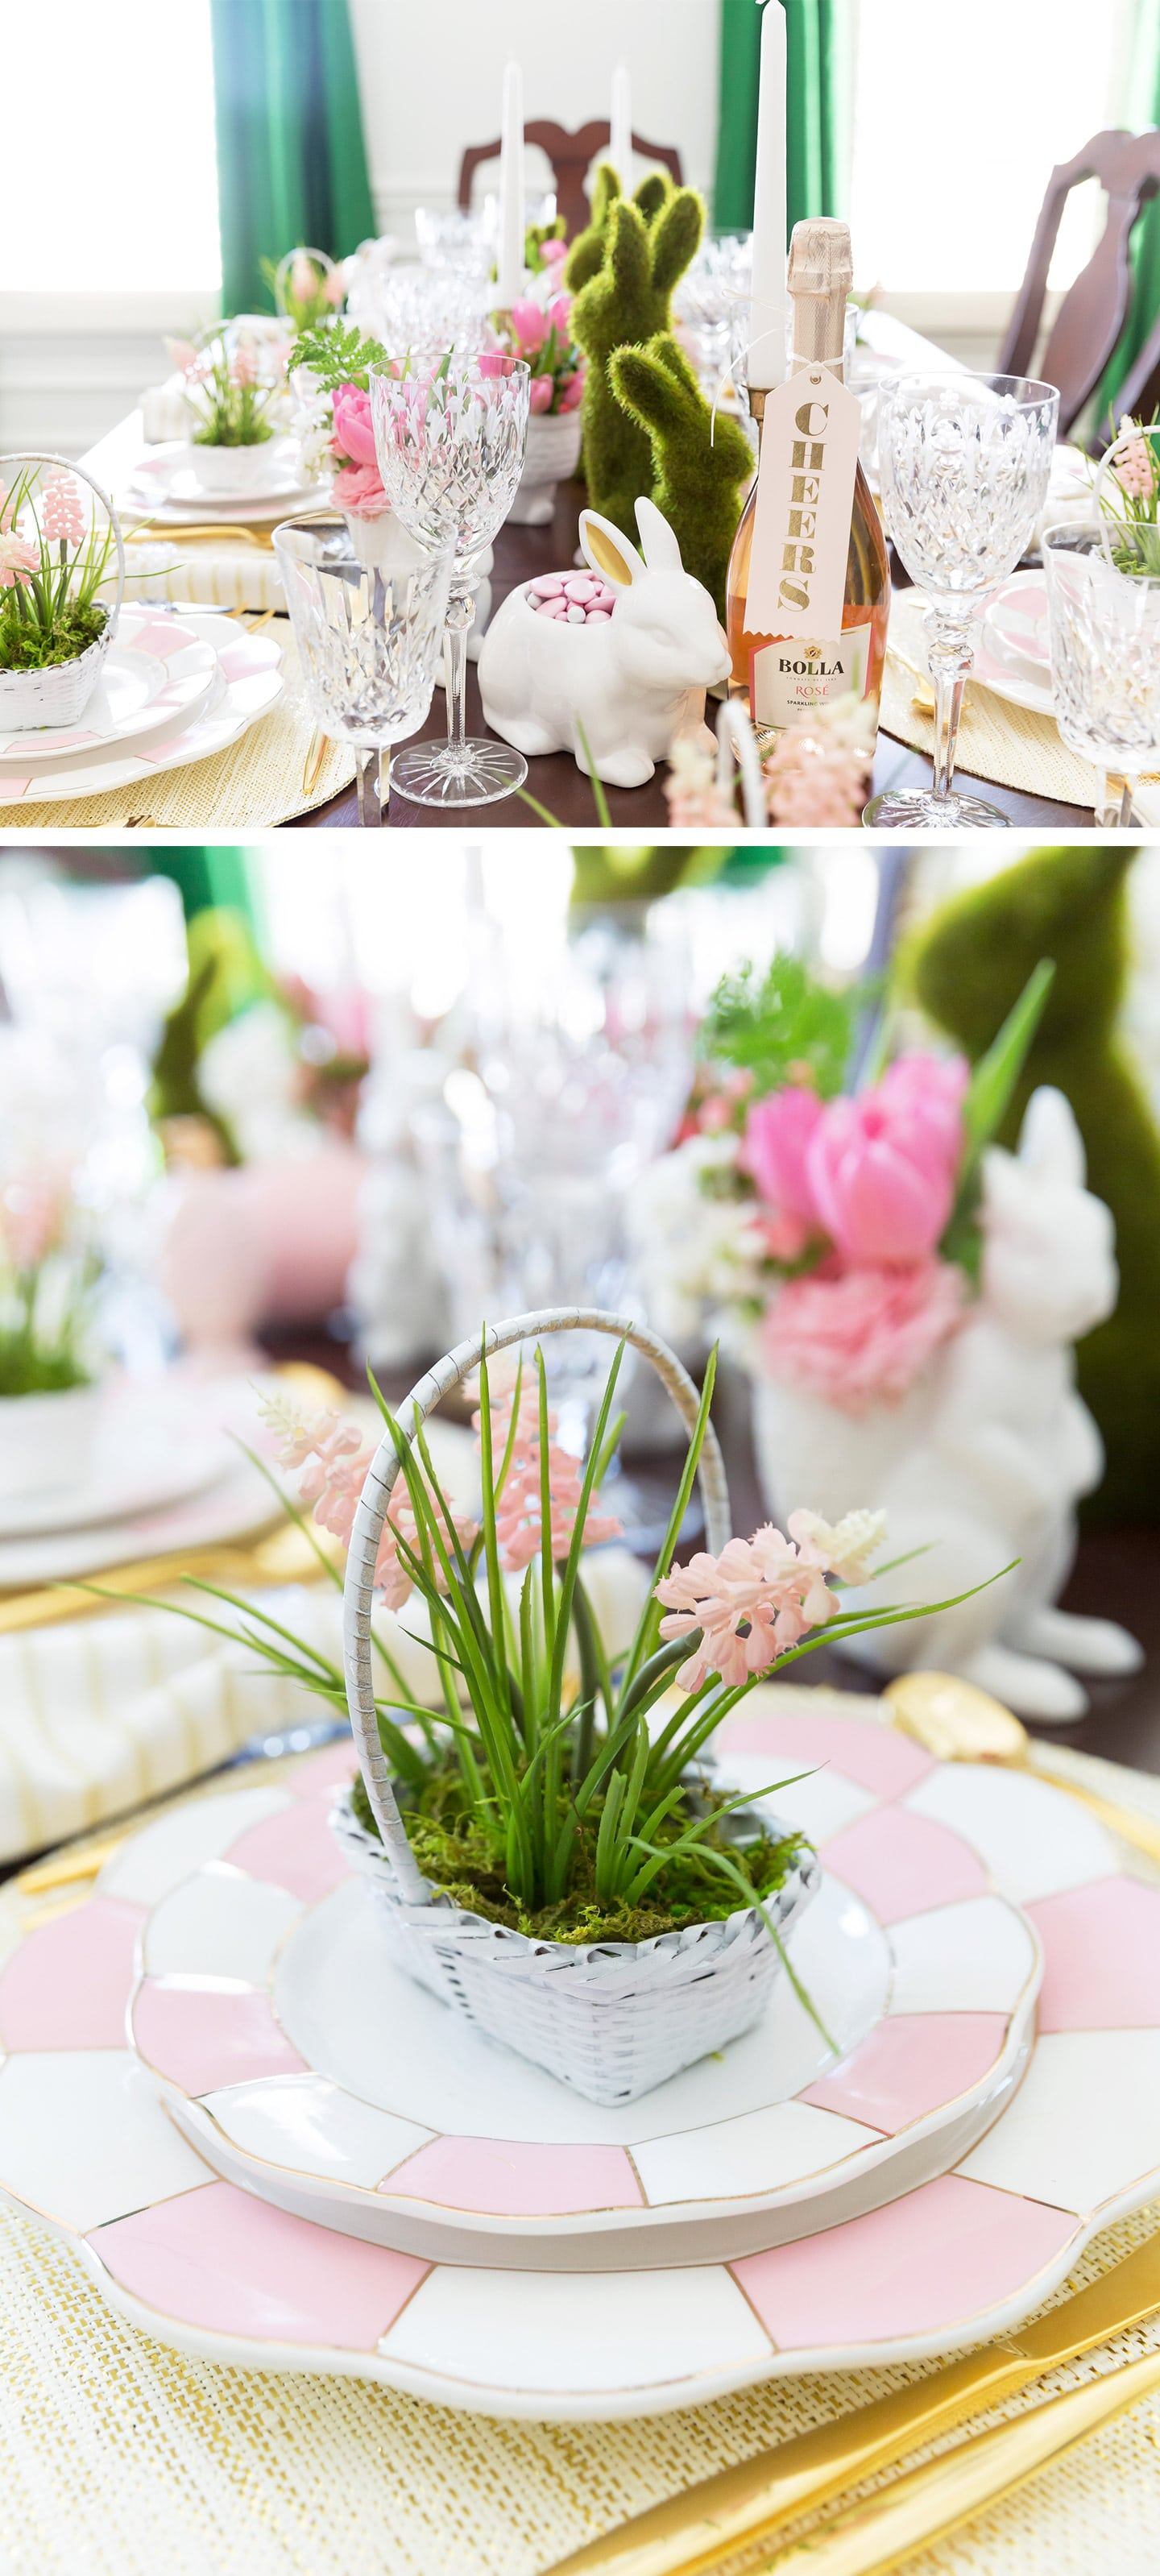 Style an Easter Tablescape